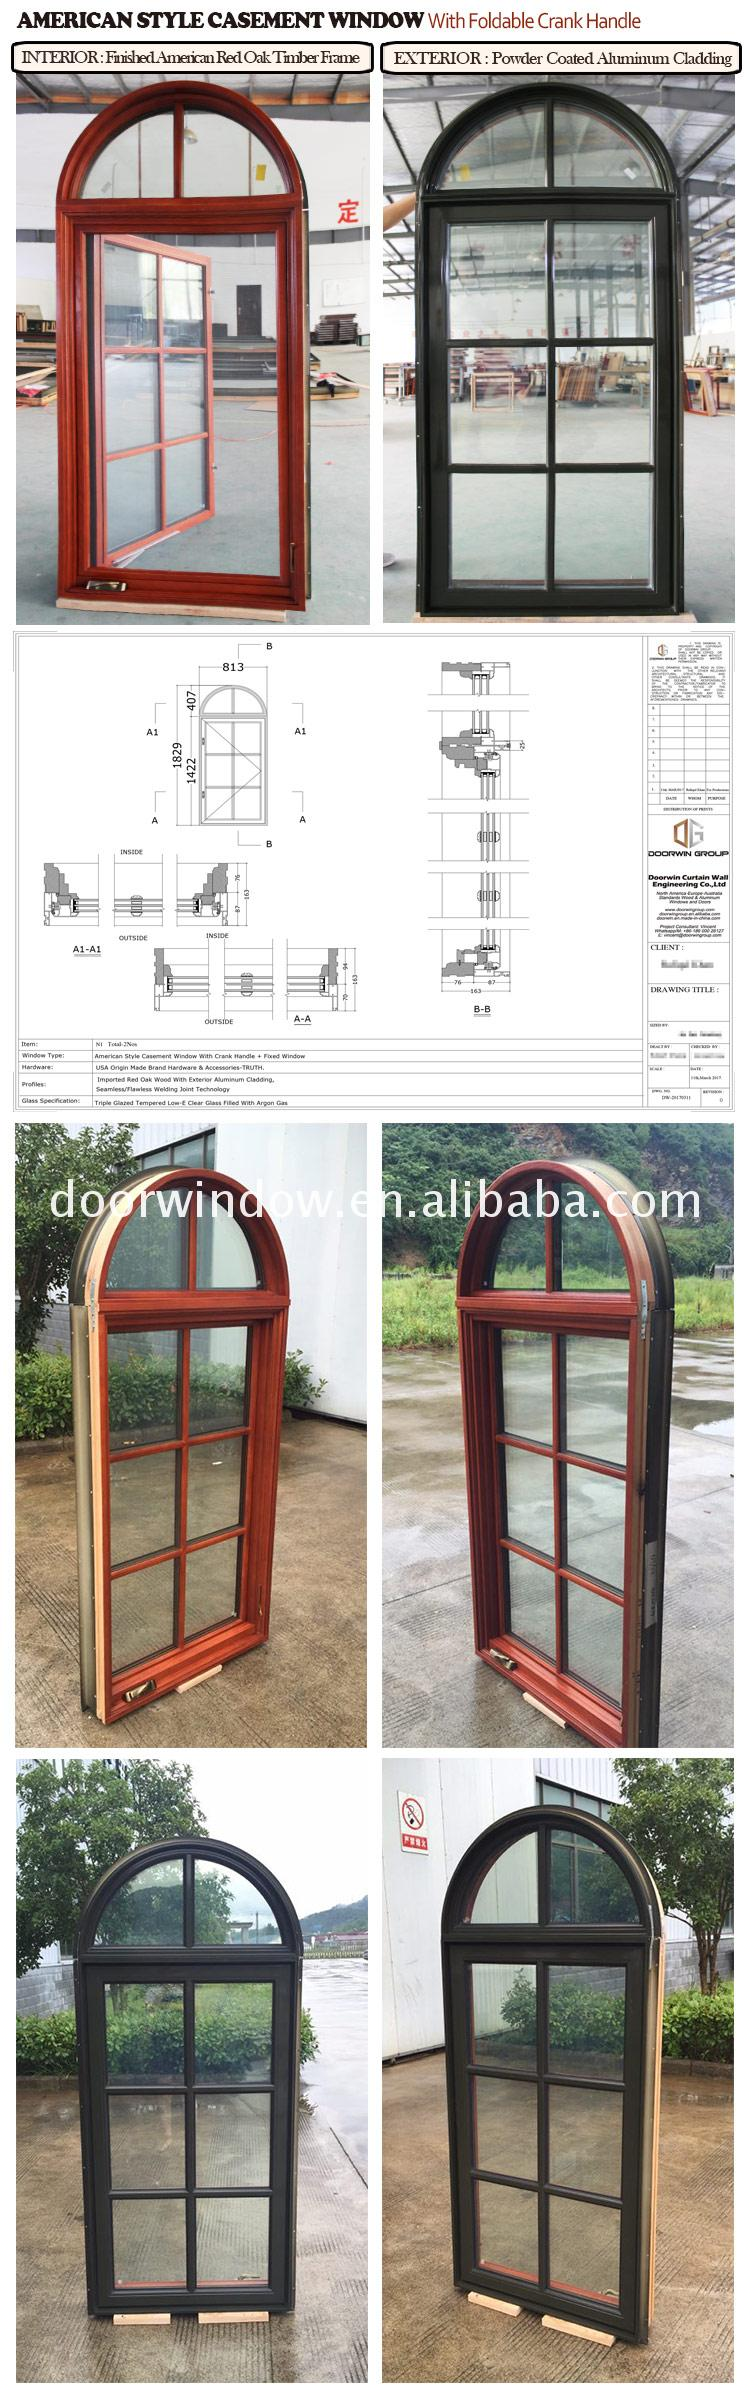 American style casement window with crank handle wooden sash profiles profiles for doors and windows